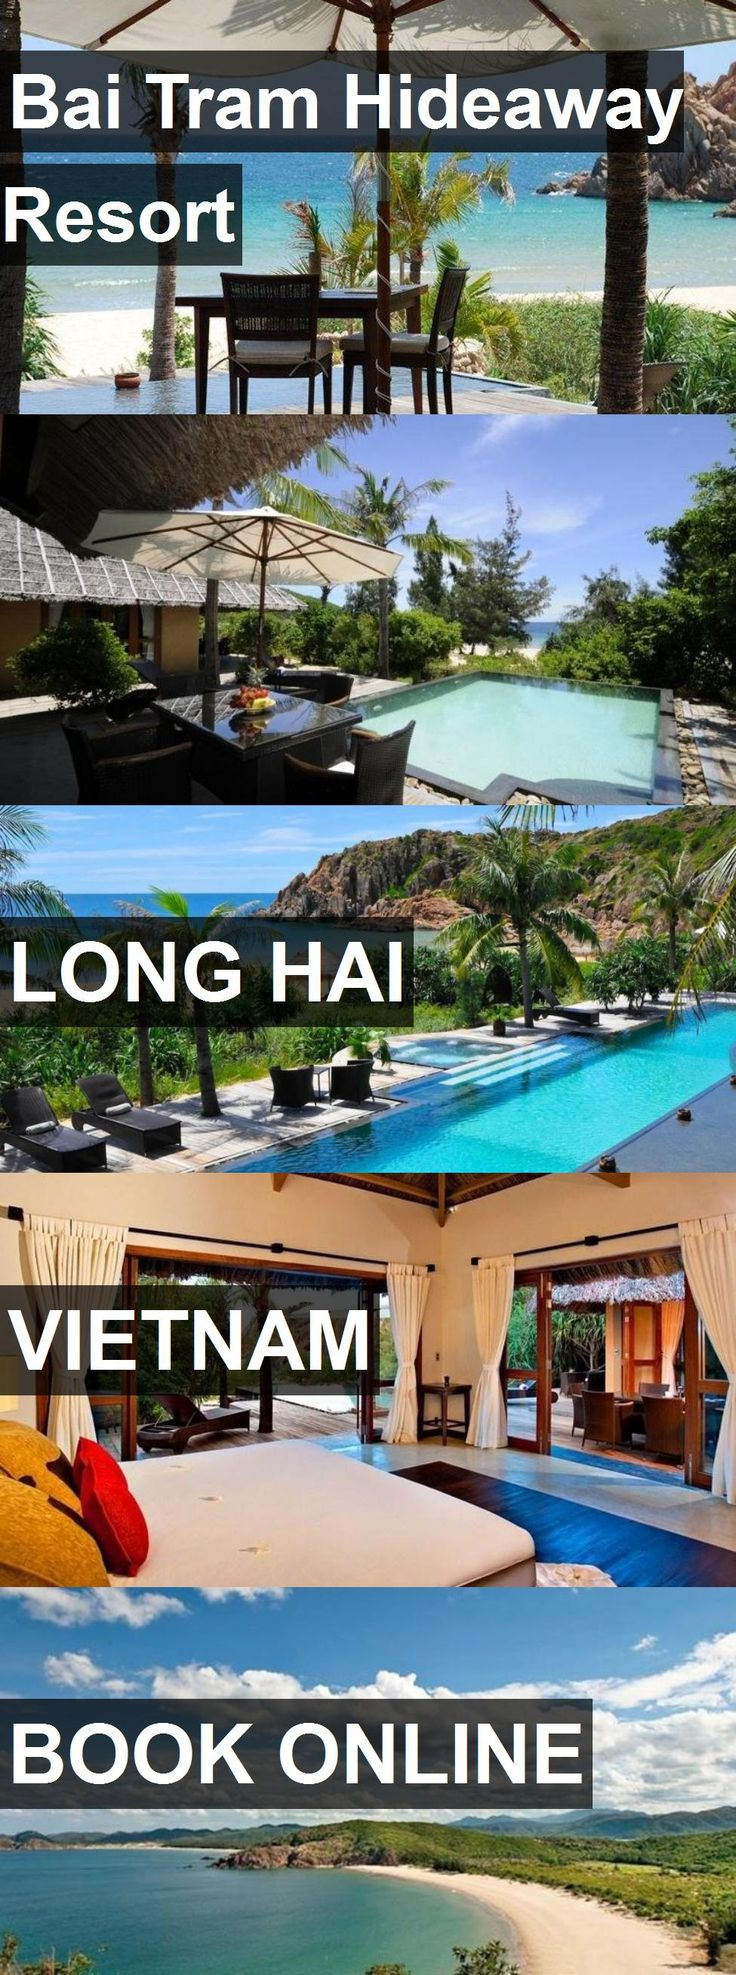 Hotel Bai Tram Hideaway Resort in Long Hai, Vietnam. For more information, photos, reviews and best prices please follow the link. #Vietnam #LongHai #travel #vacation #hotel